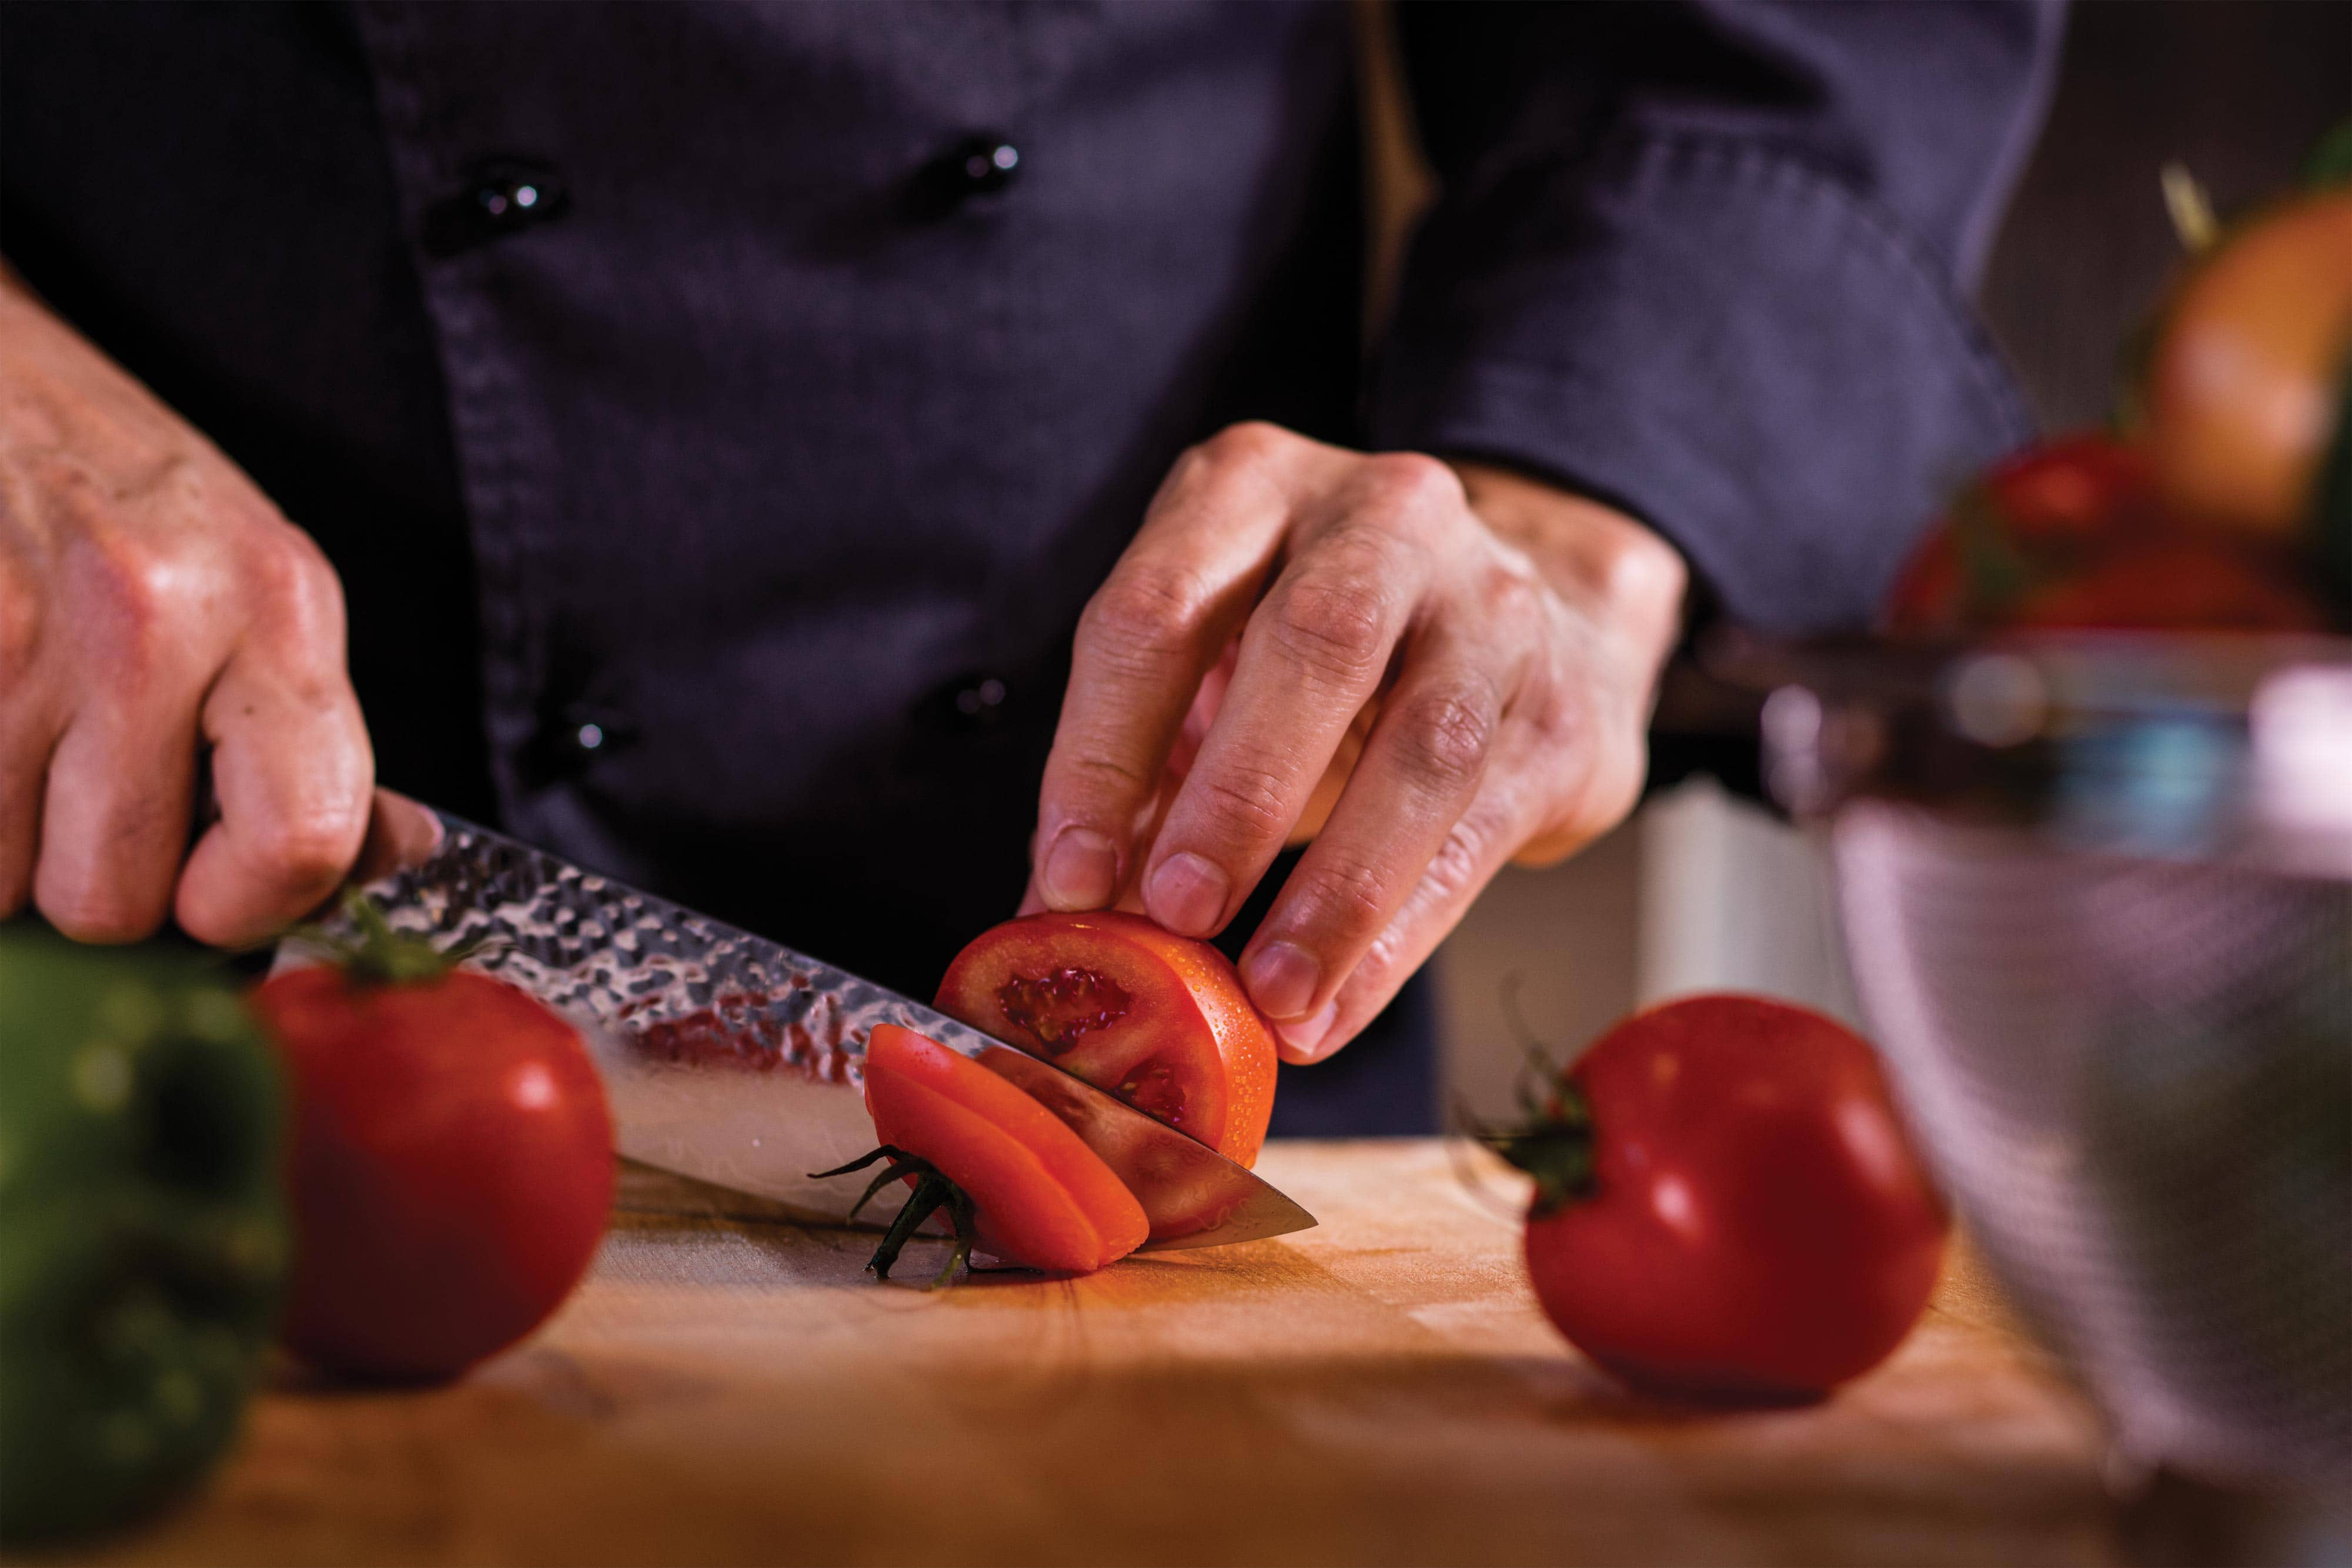 Pizza Cucina Chef slicing tomatoes